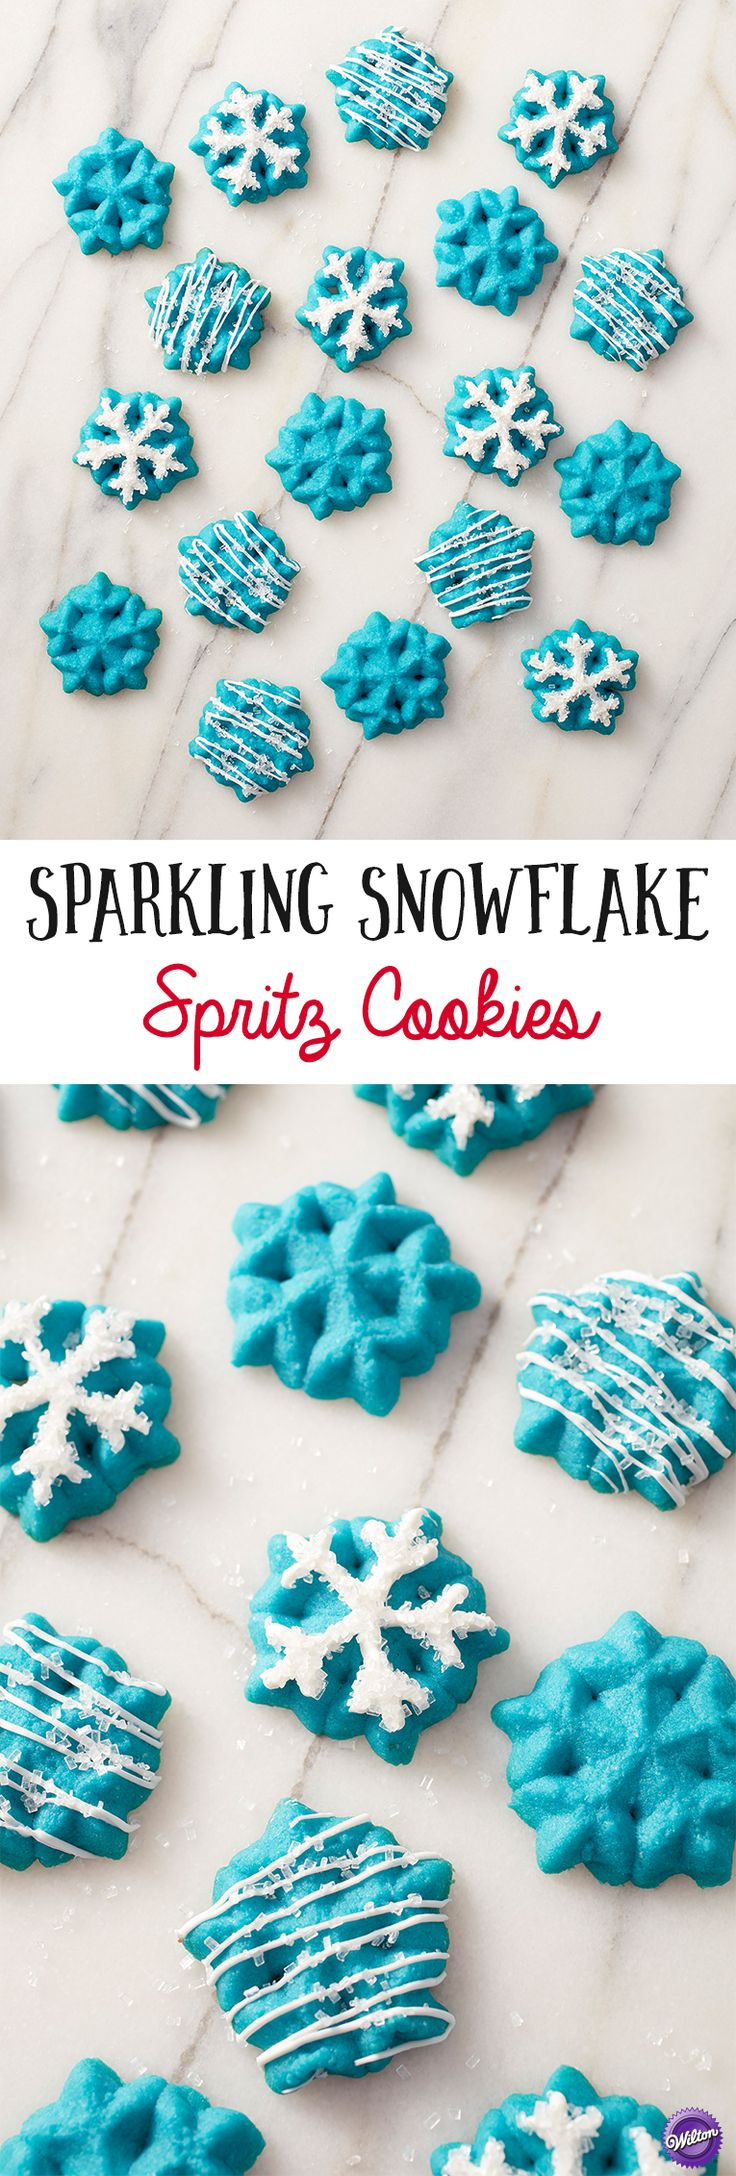 Spritz Cookies are some of the easiest cookies to make, and these Snowflake Spritz have the addition of sparkle with Wilton Blue Icing Color, Bright White Candy Melts Candy and Sparkling Sugar. Serve them anytime during the holidays and winter months when the snow is falling!